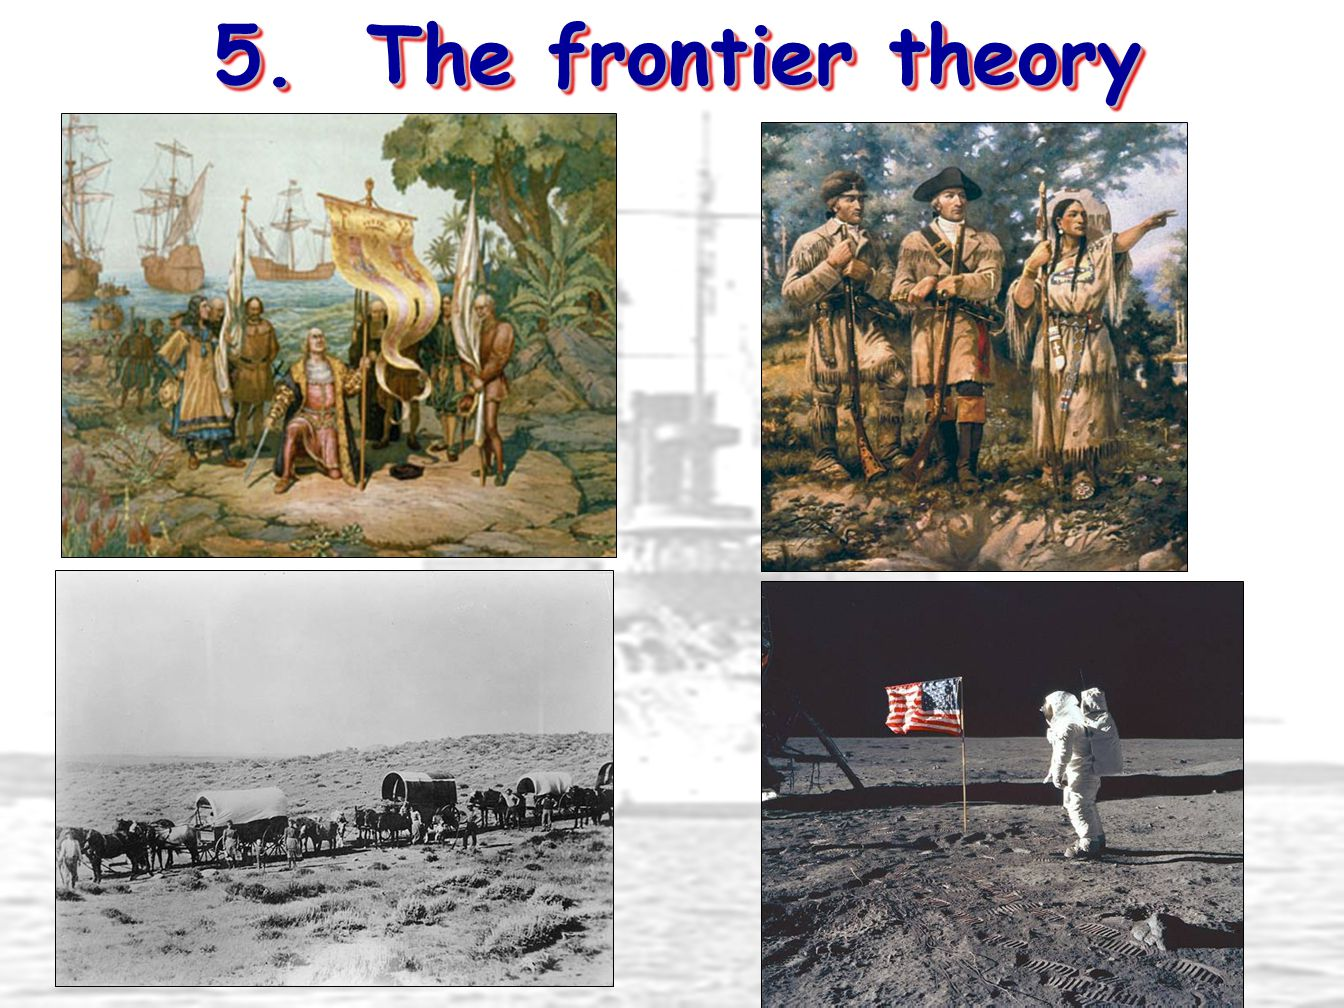 5. The frontier theory